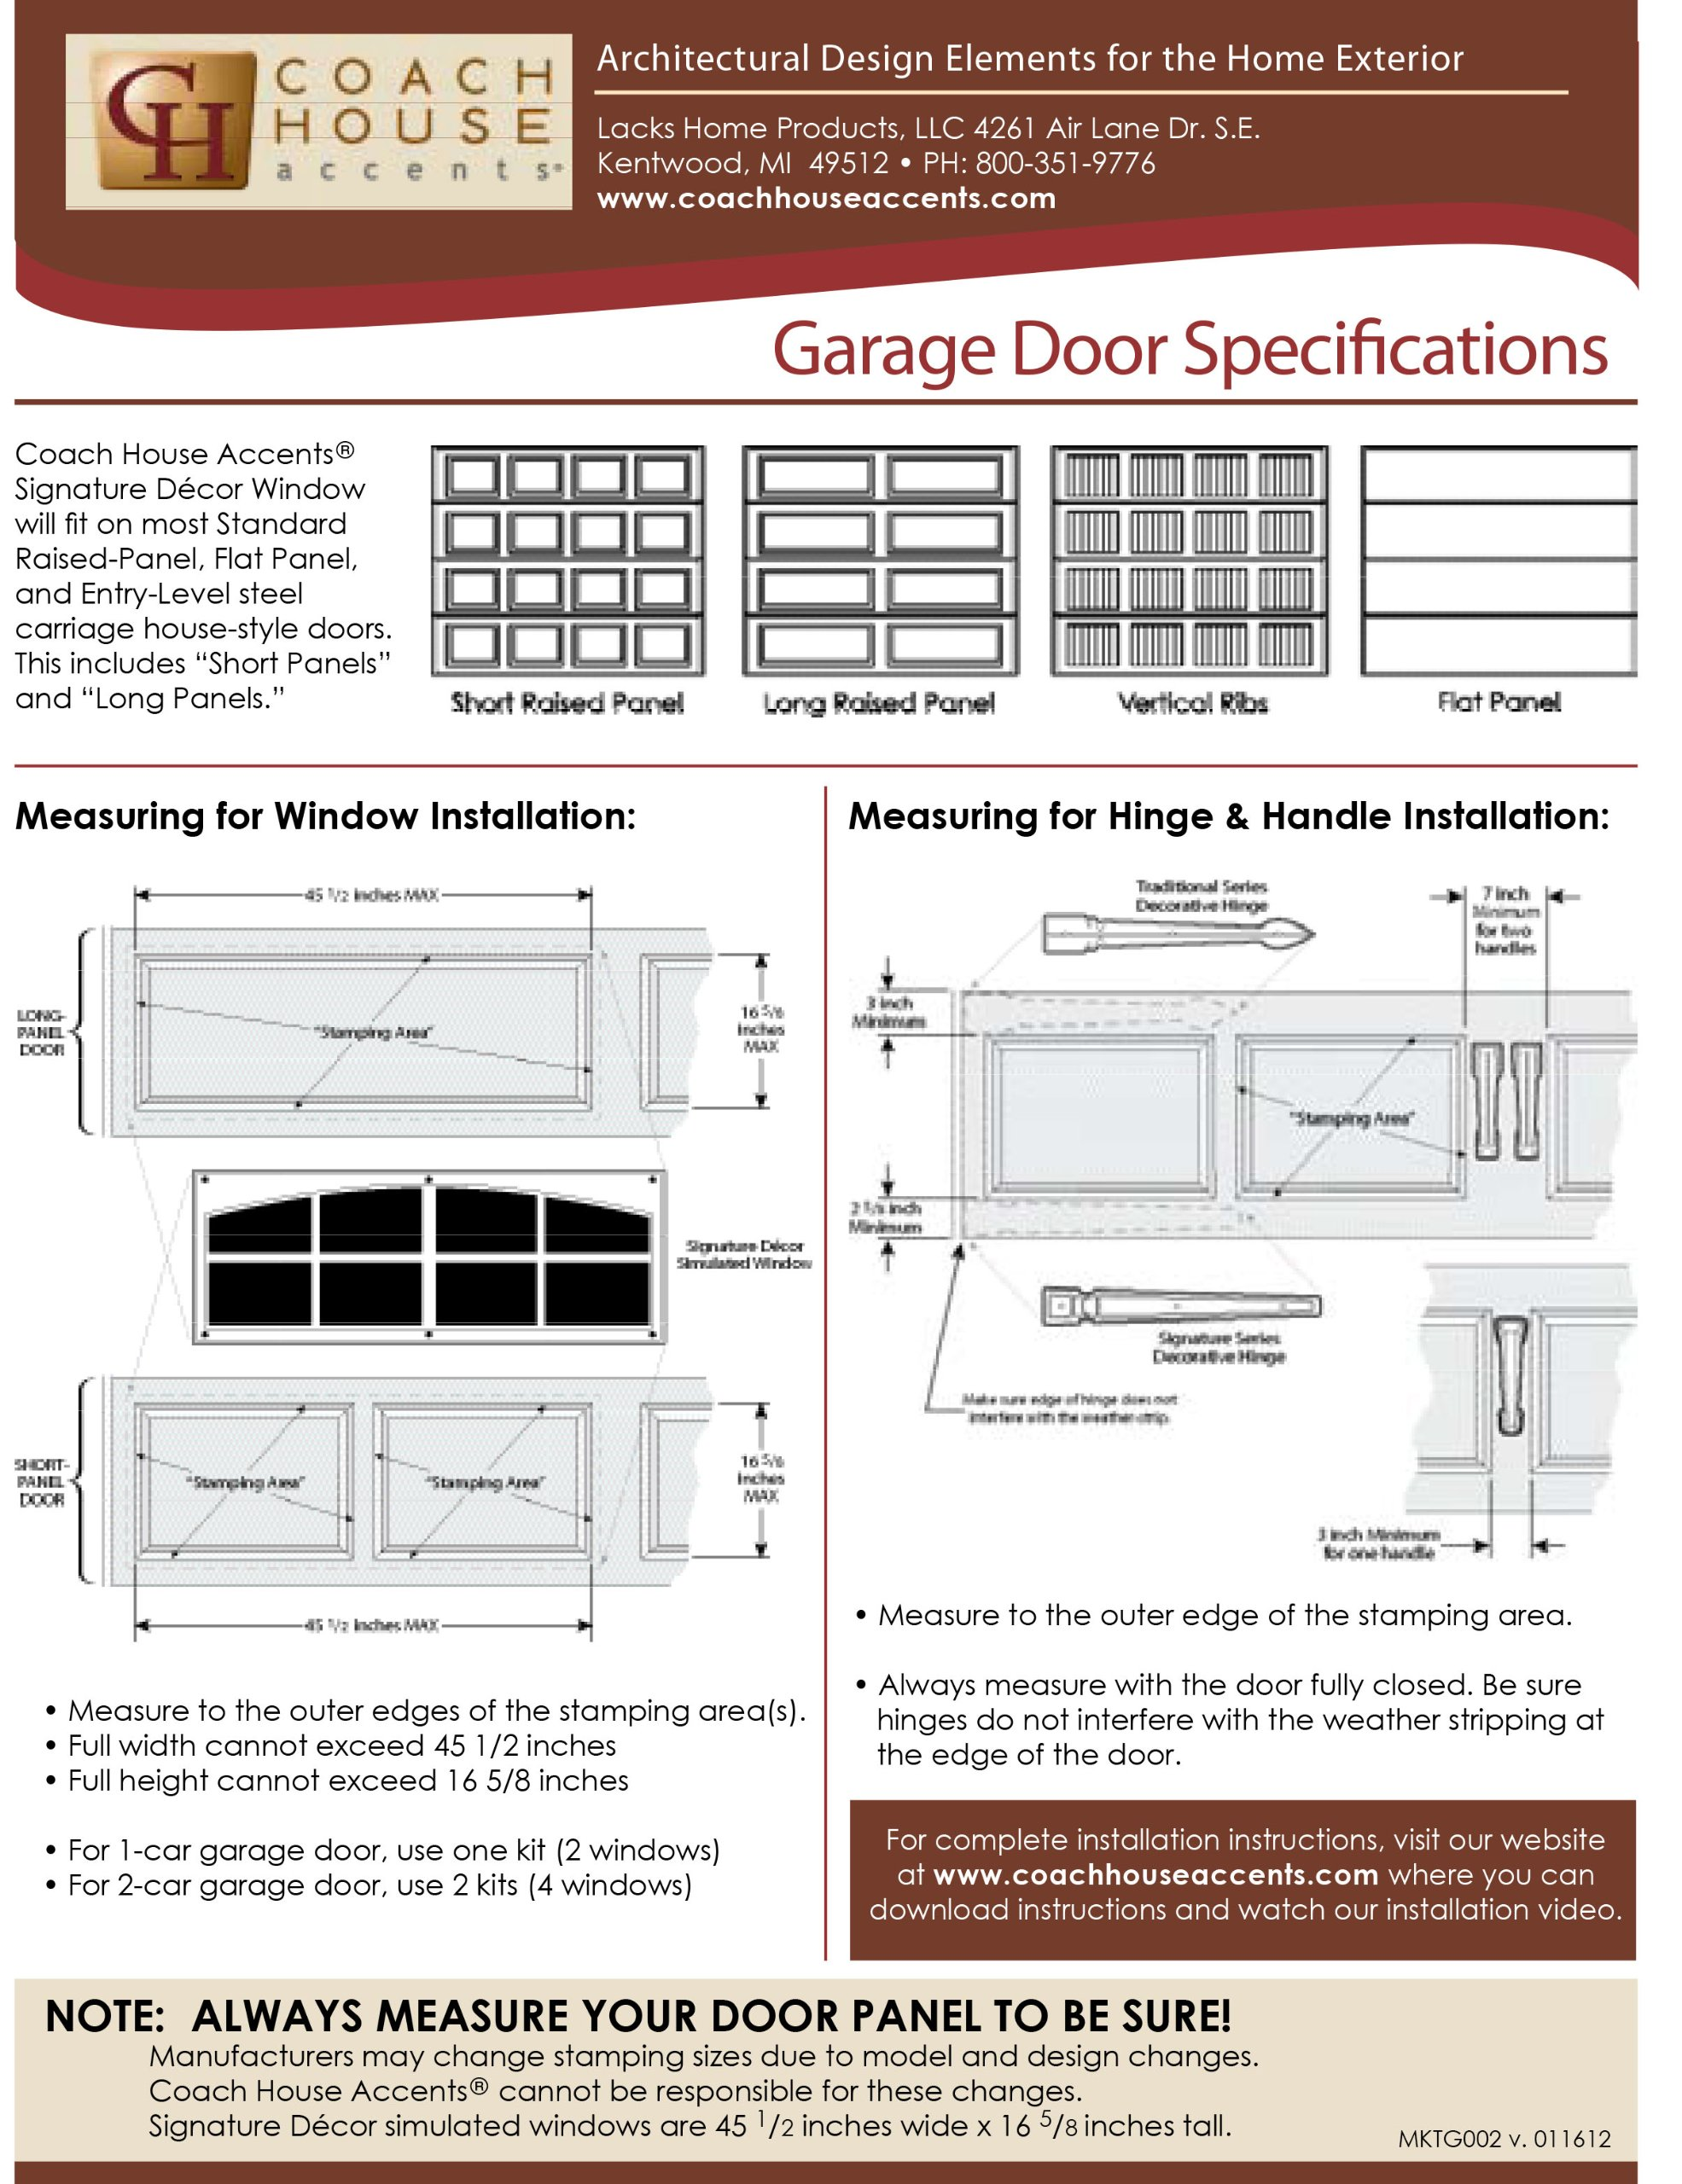 pergolaits doorgarage full kits pergola garage door vinyl above visoritspergola fascinating design over of pictures size patio for visor window